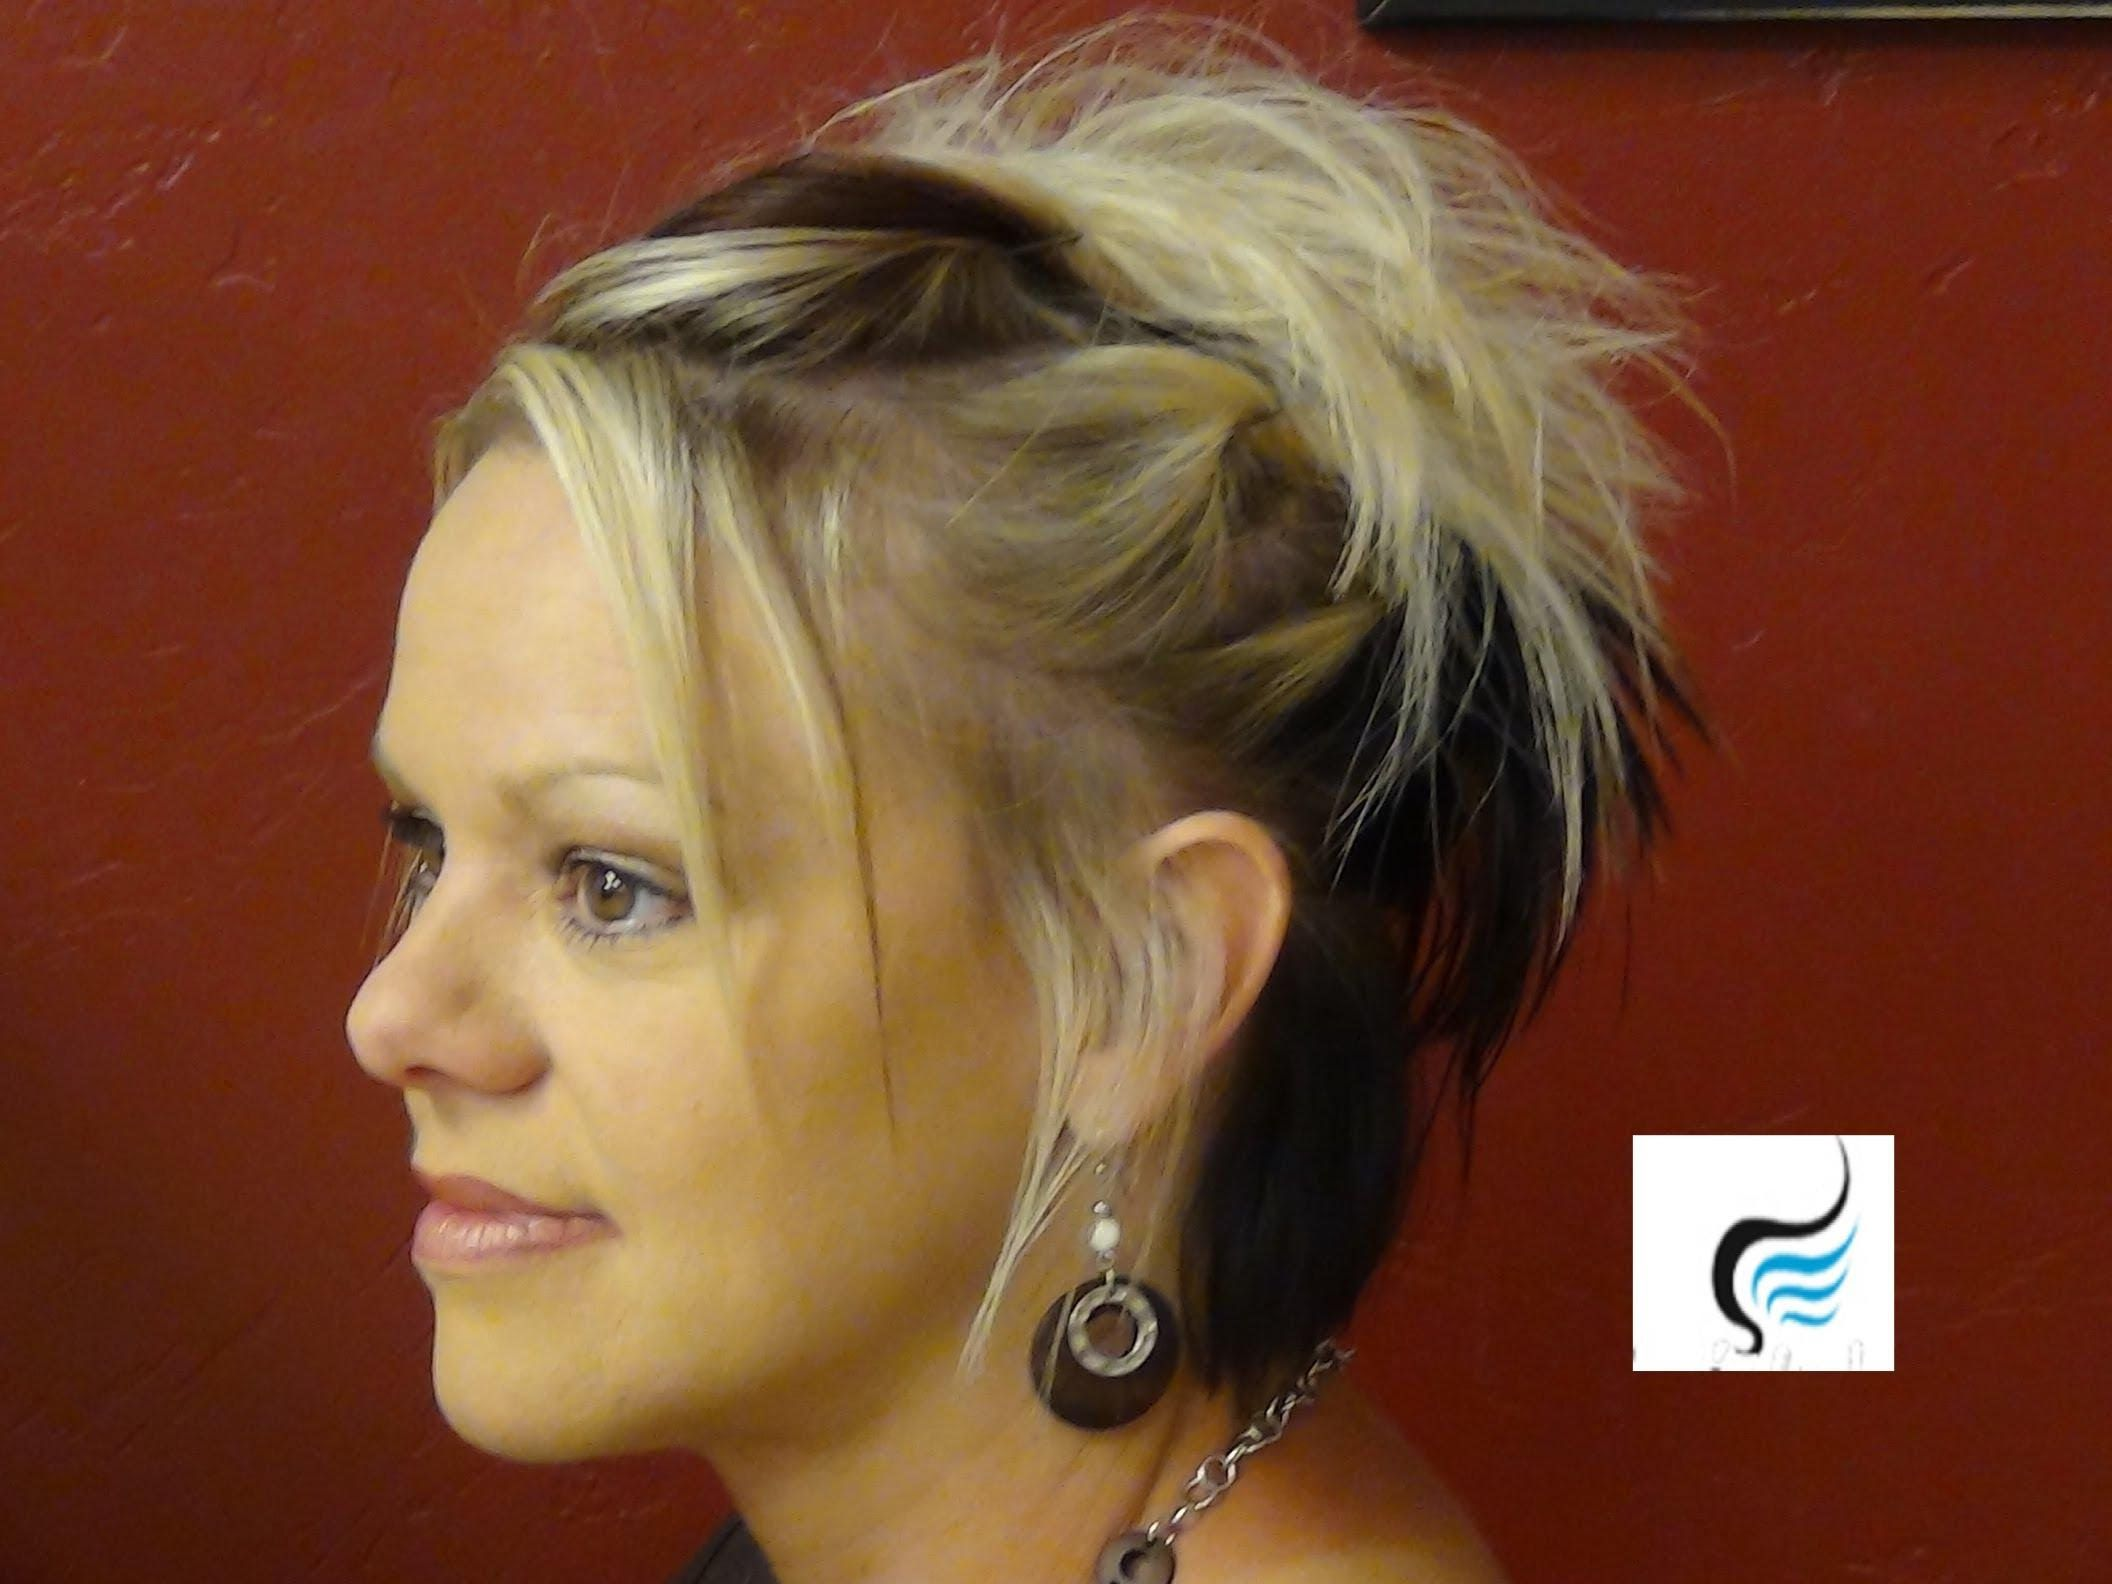 Do it yourself how to cut bangs on your own hair beauty do it yourself how to cut bangs on your own hair latest short hairstyleshairstyles videosboy solutioingenieria Choice Image